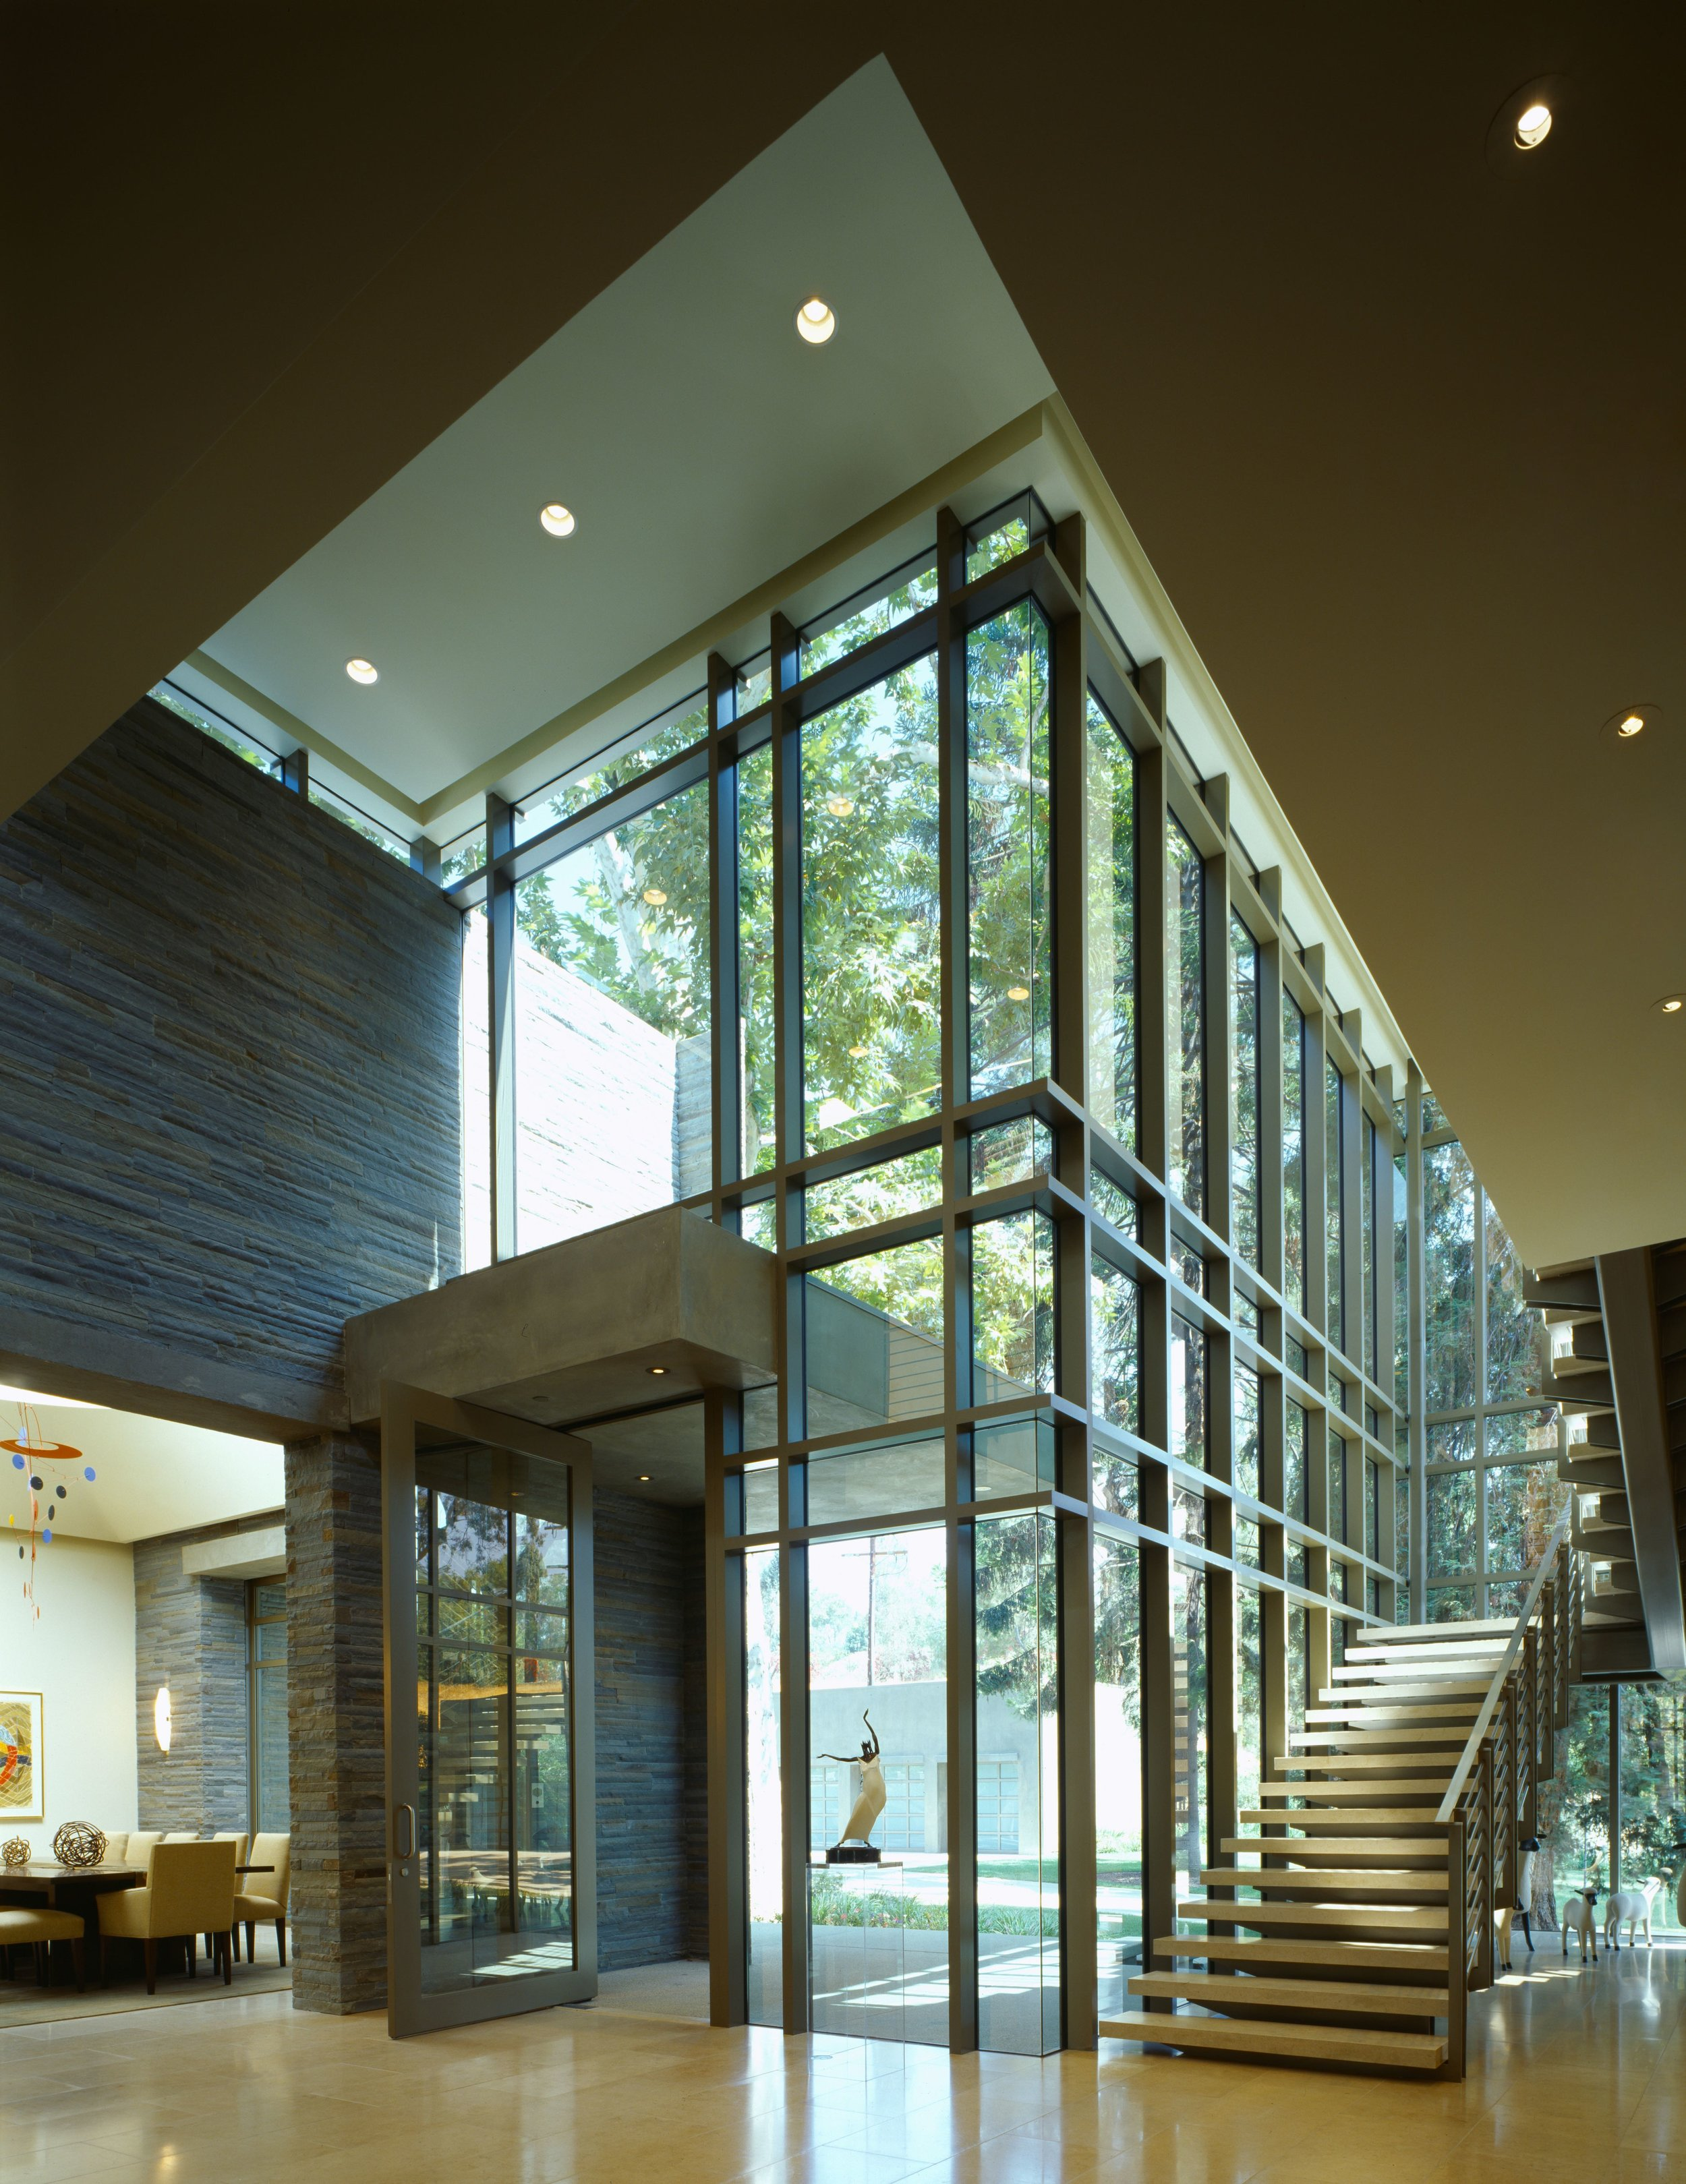 Completed at Landry Design Group. Photos by Erhard Pfeiffer.